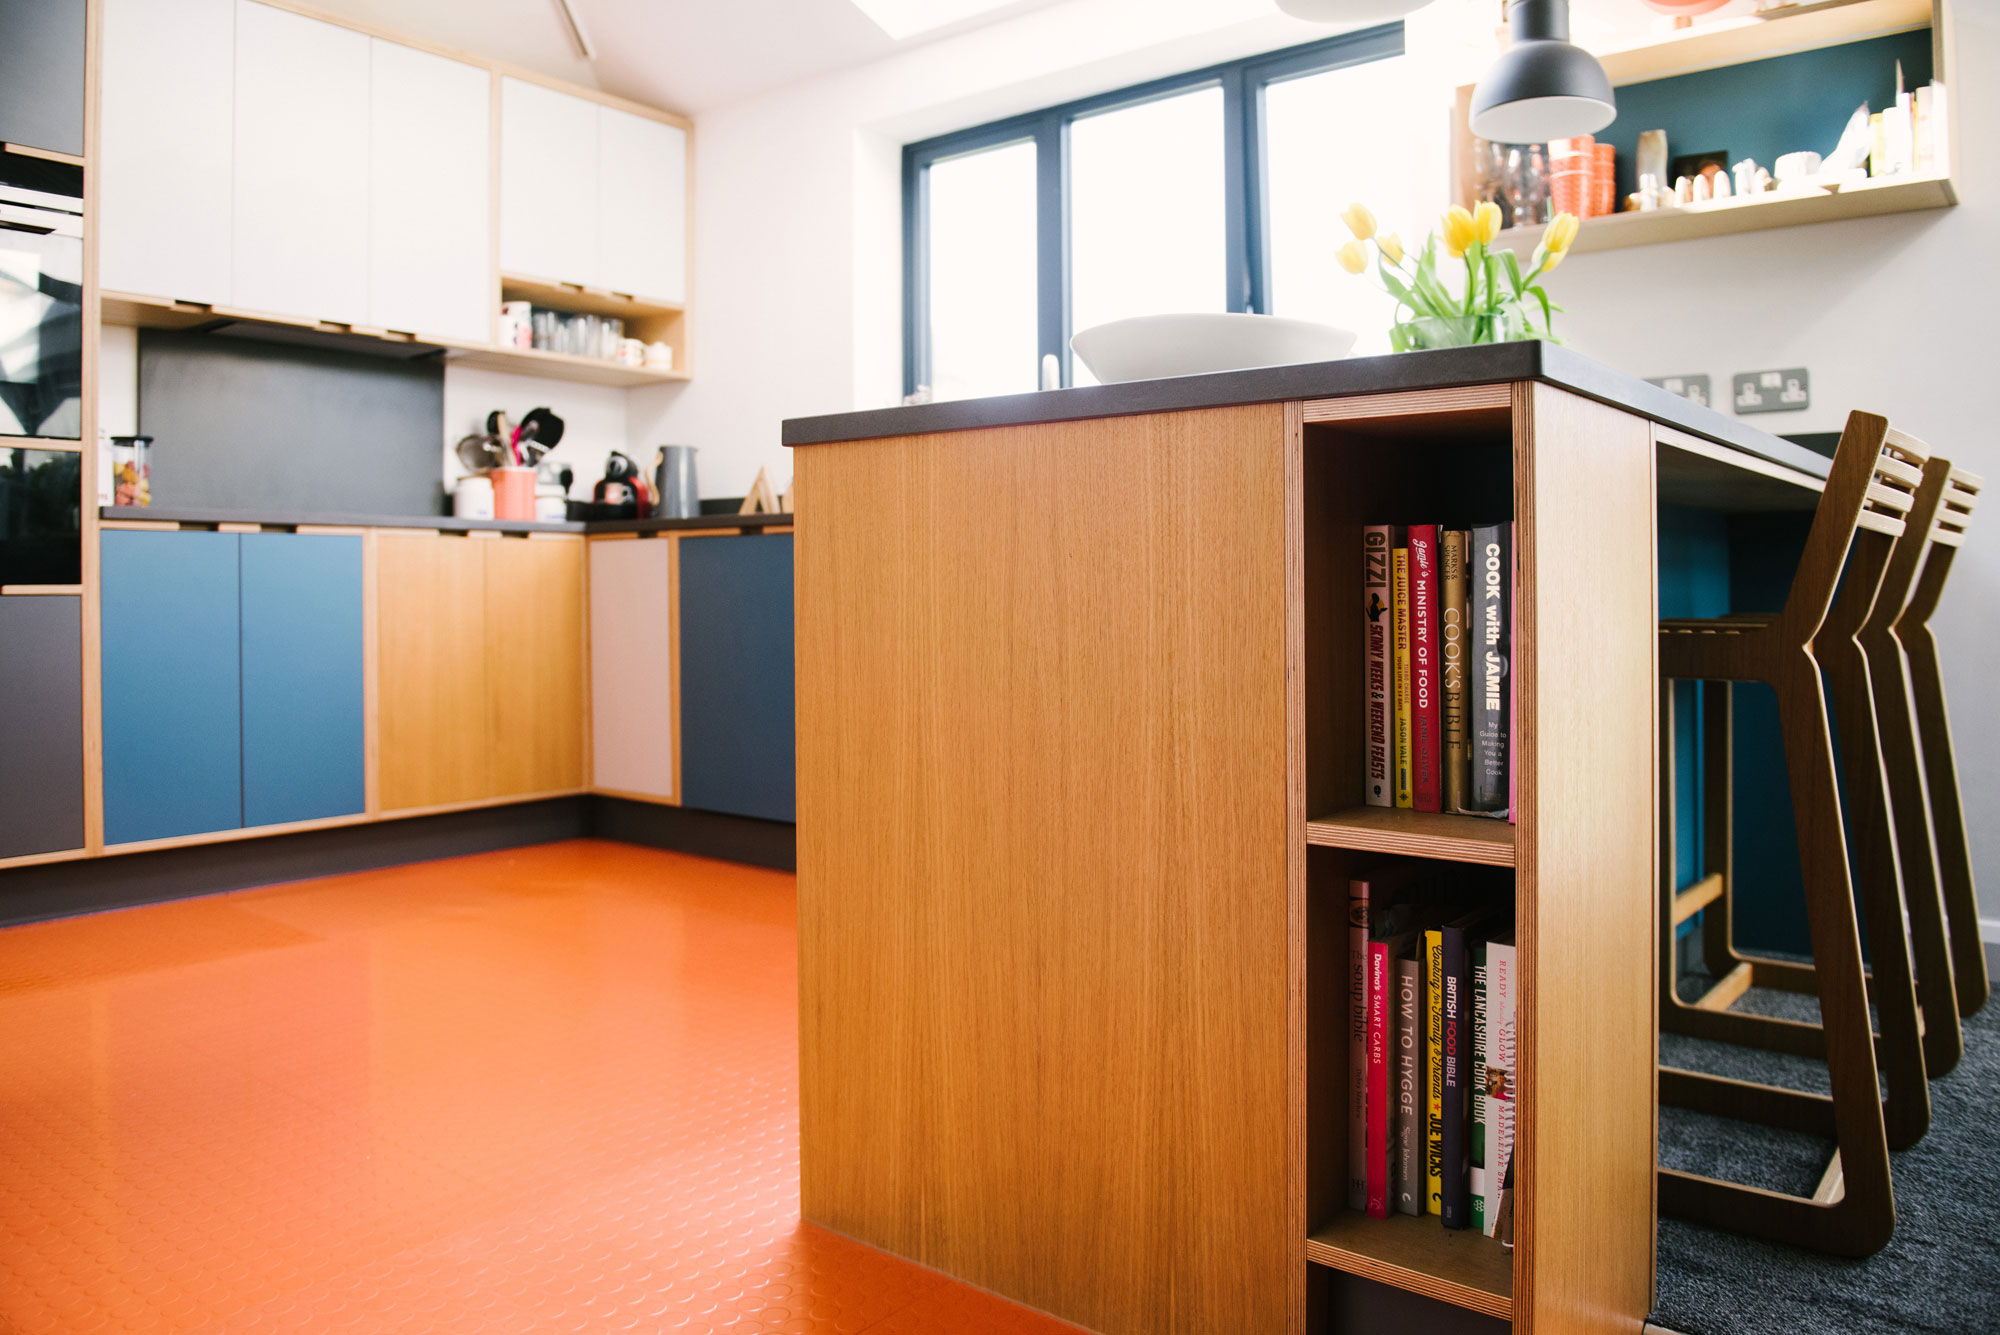 Bookcase in Island of Plywood Kitchen With Orange Floor